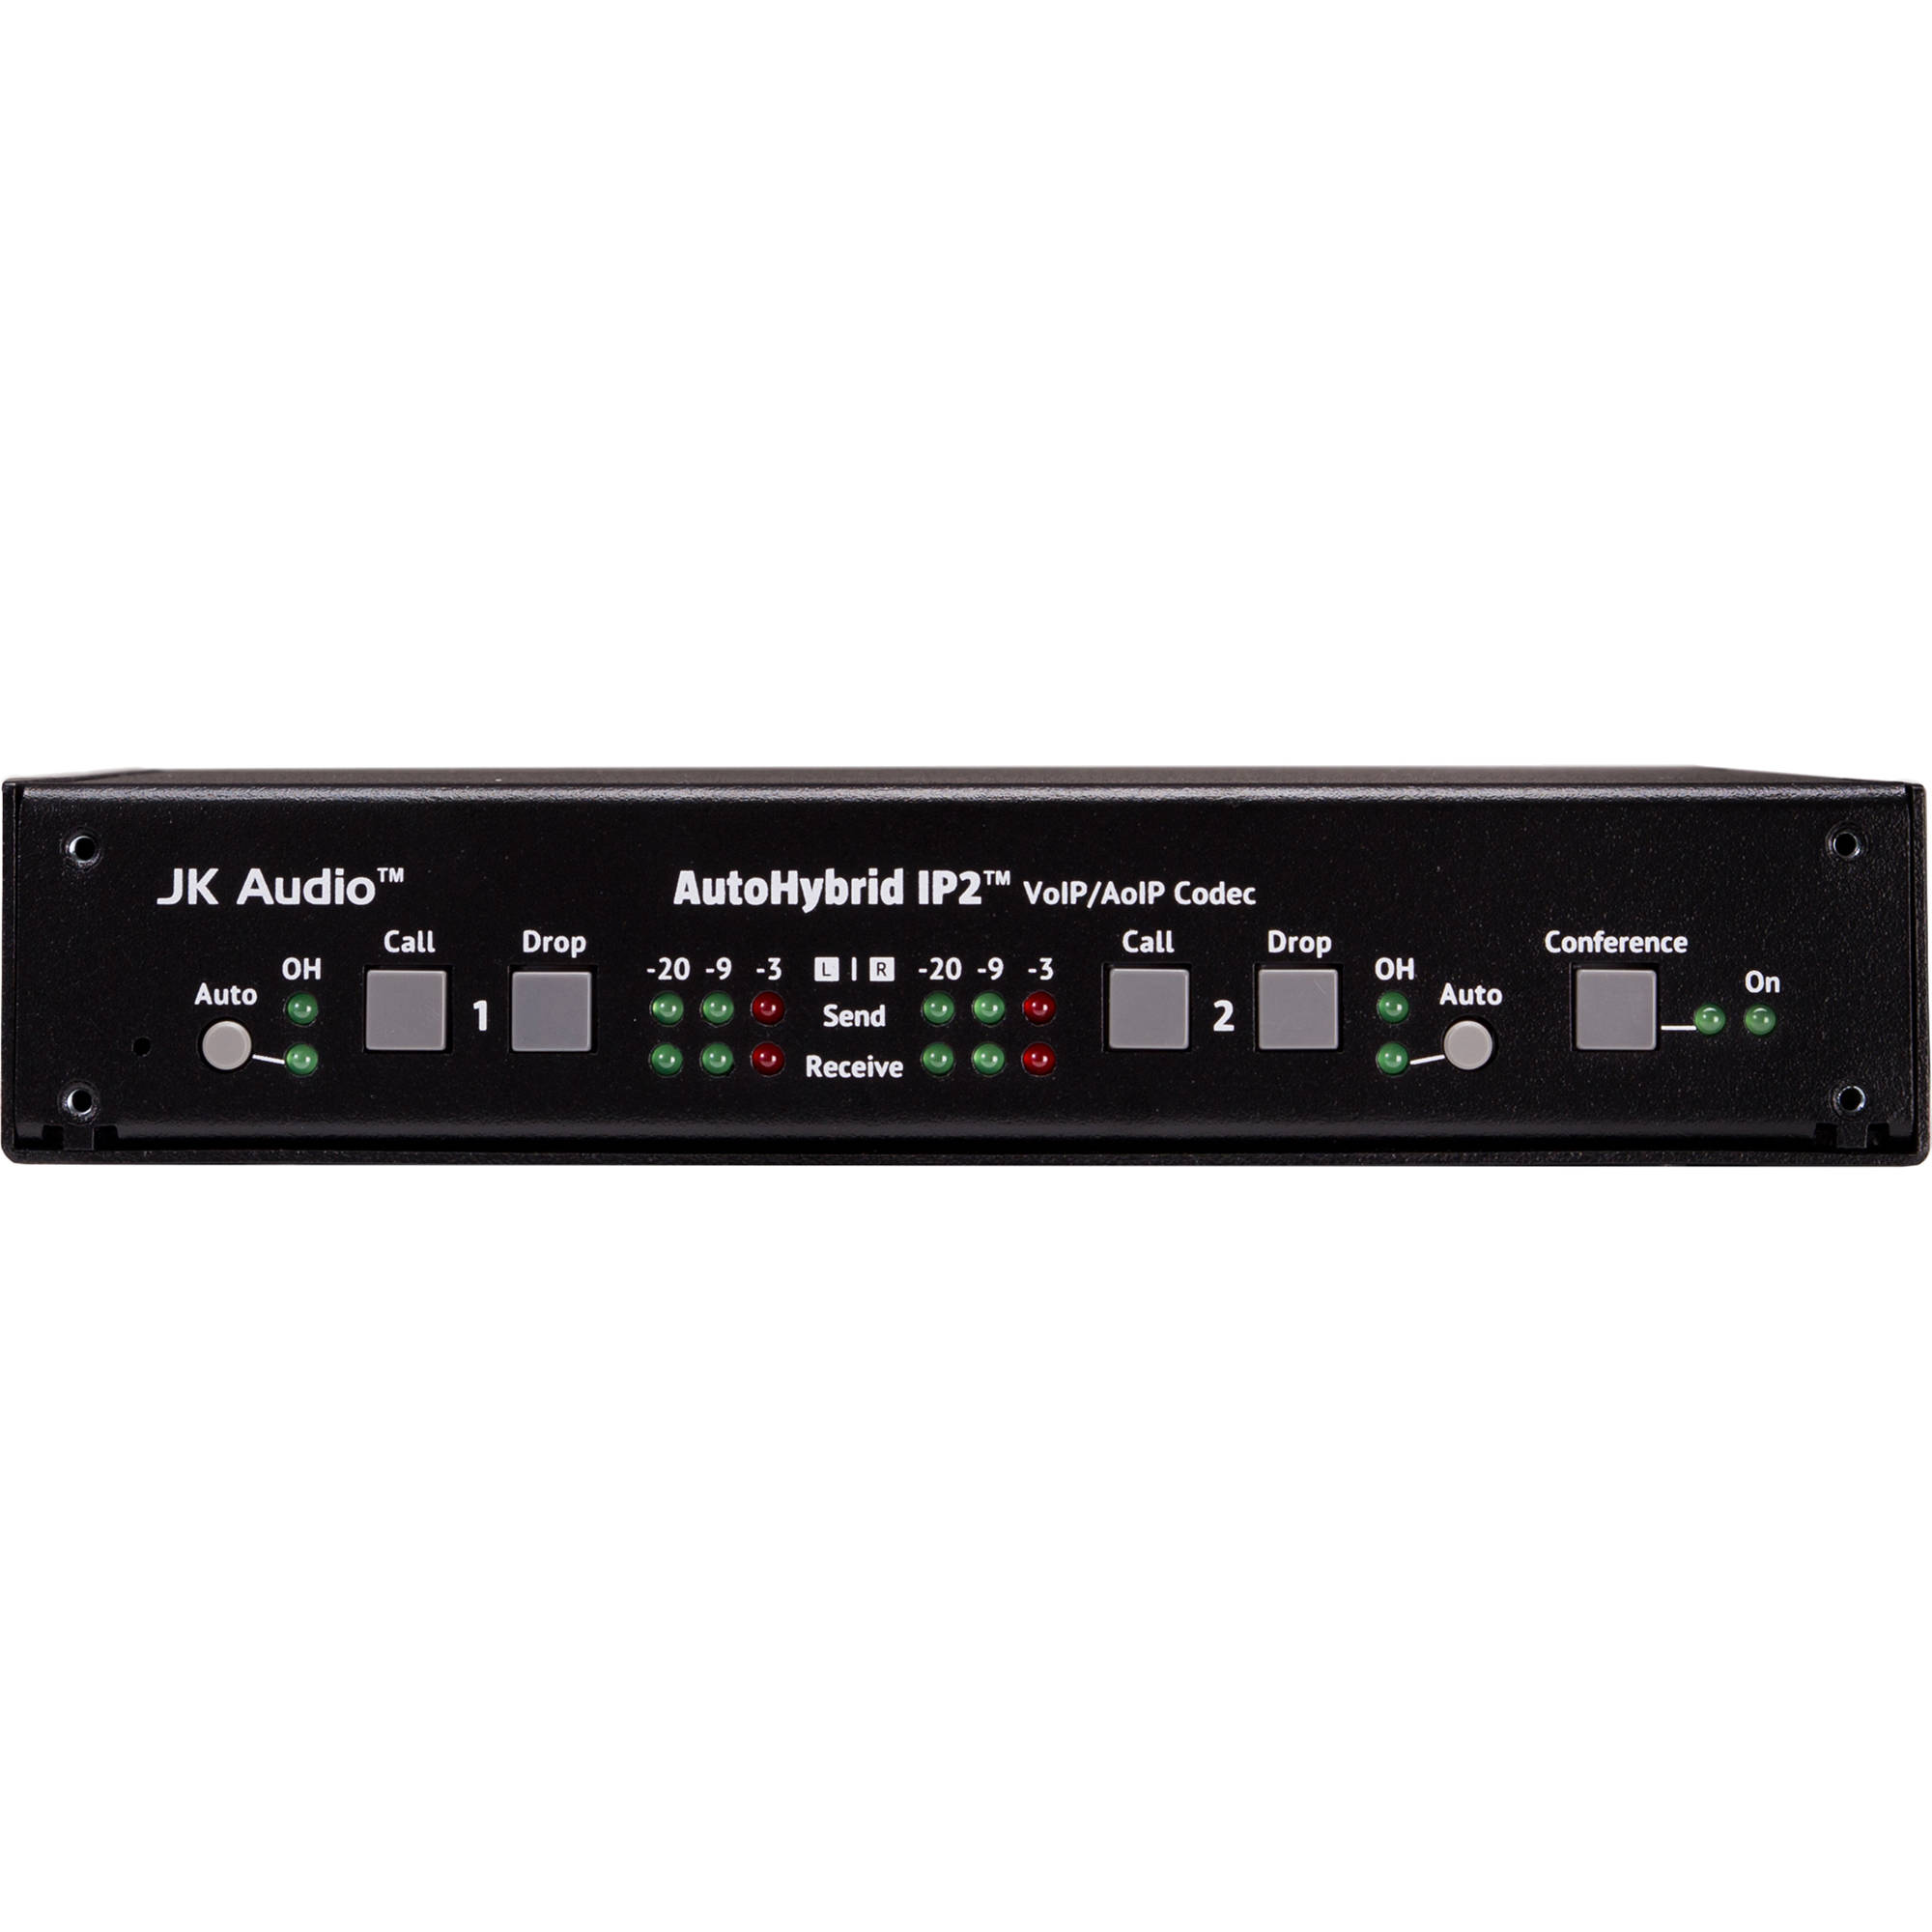 Jk Audio Autohybrid Ip2 Two Line Voip Hybrid Interface Autoip2 Telephone Phone Echo Cancellation Circuit Electrical